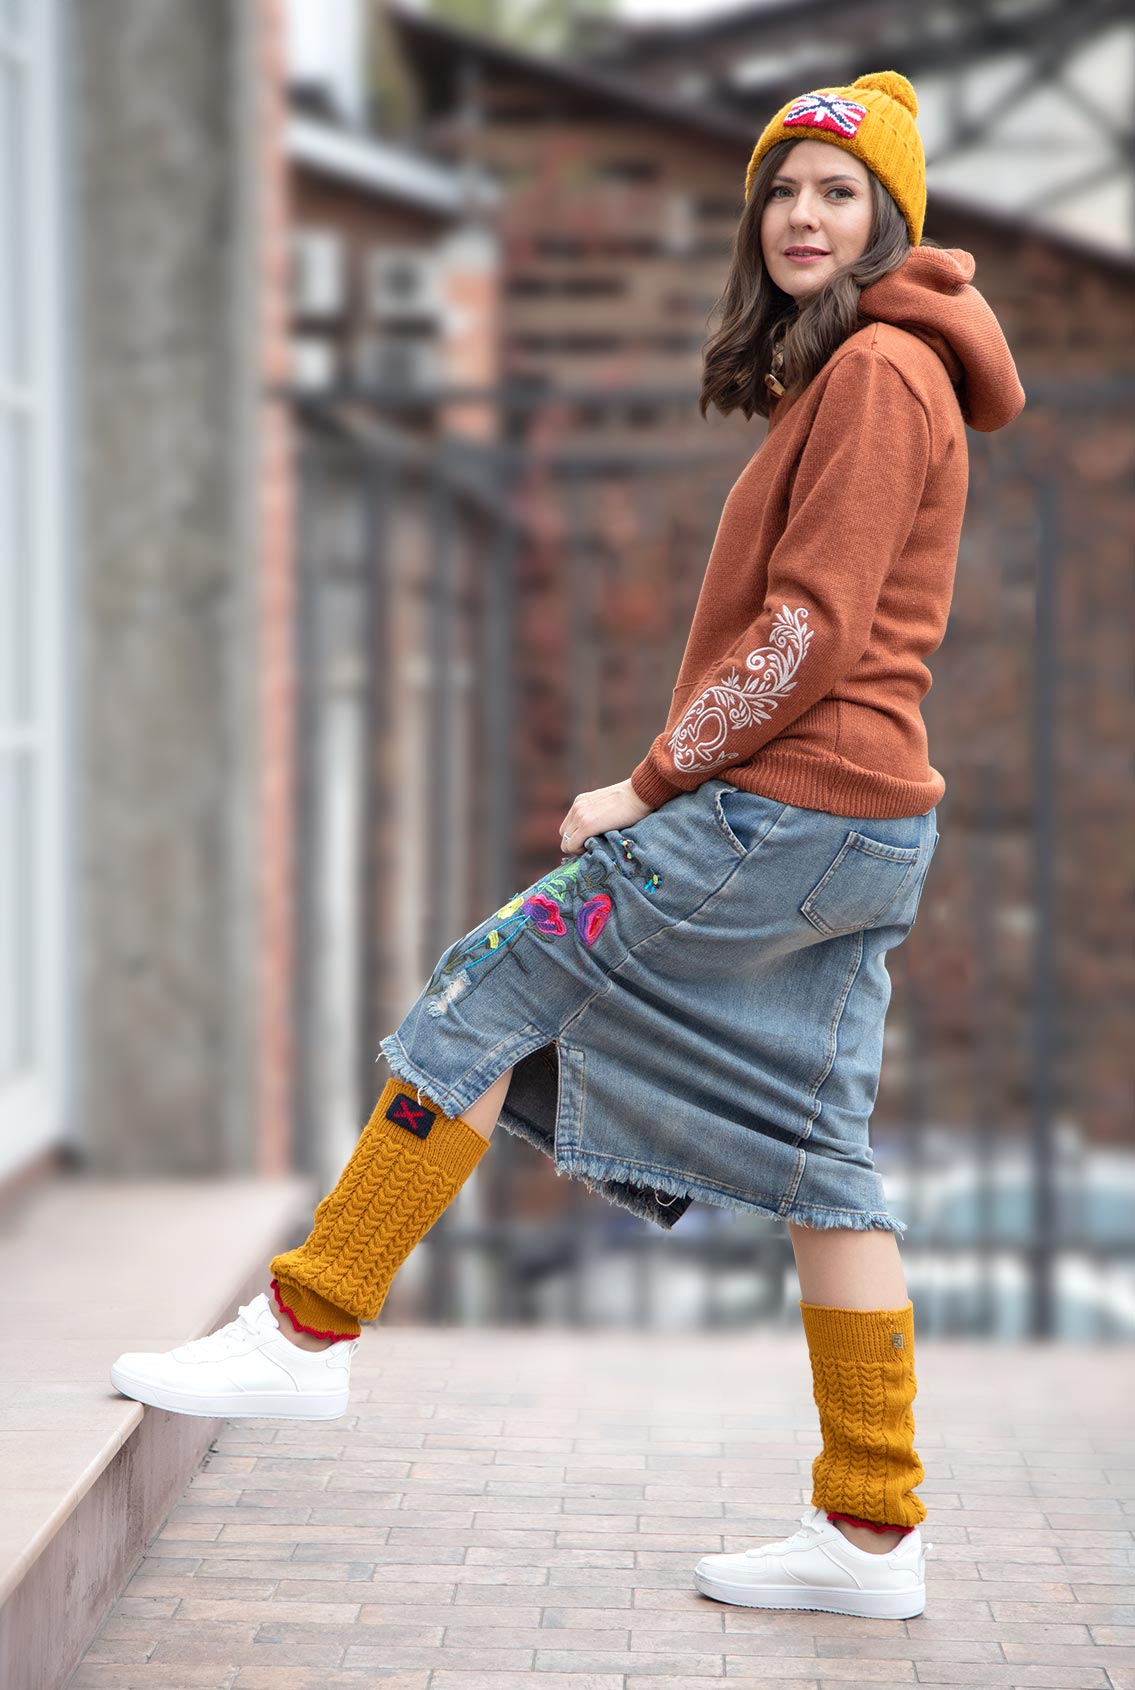 Гетры с крестиком , Leg warmers with cross